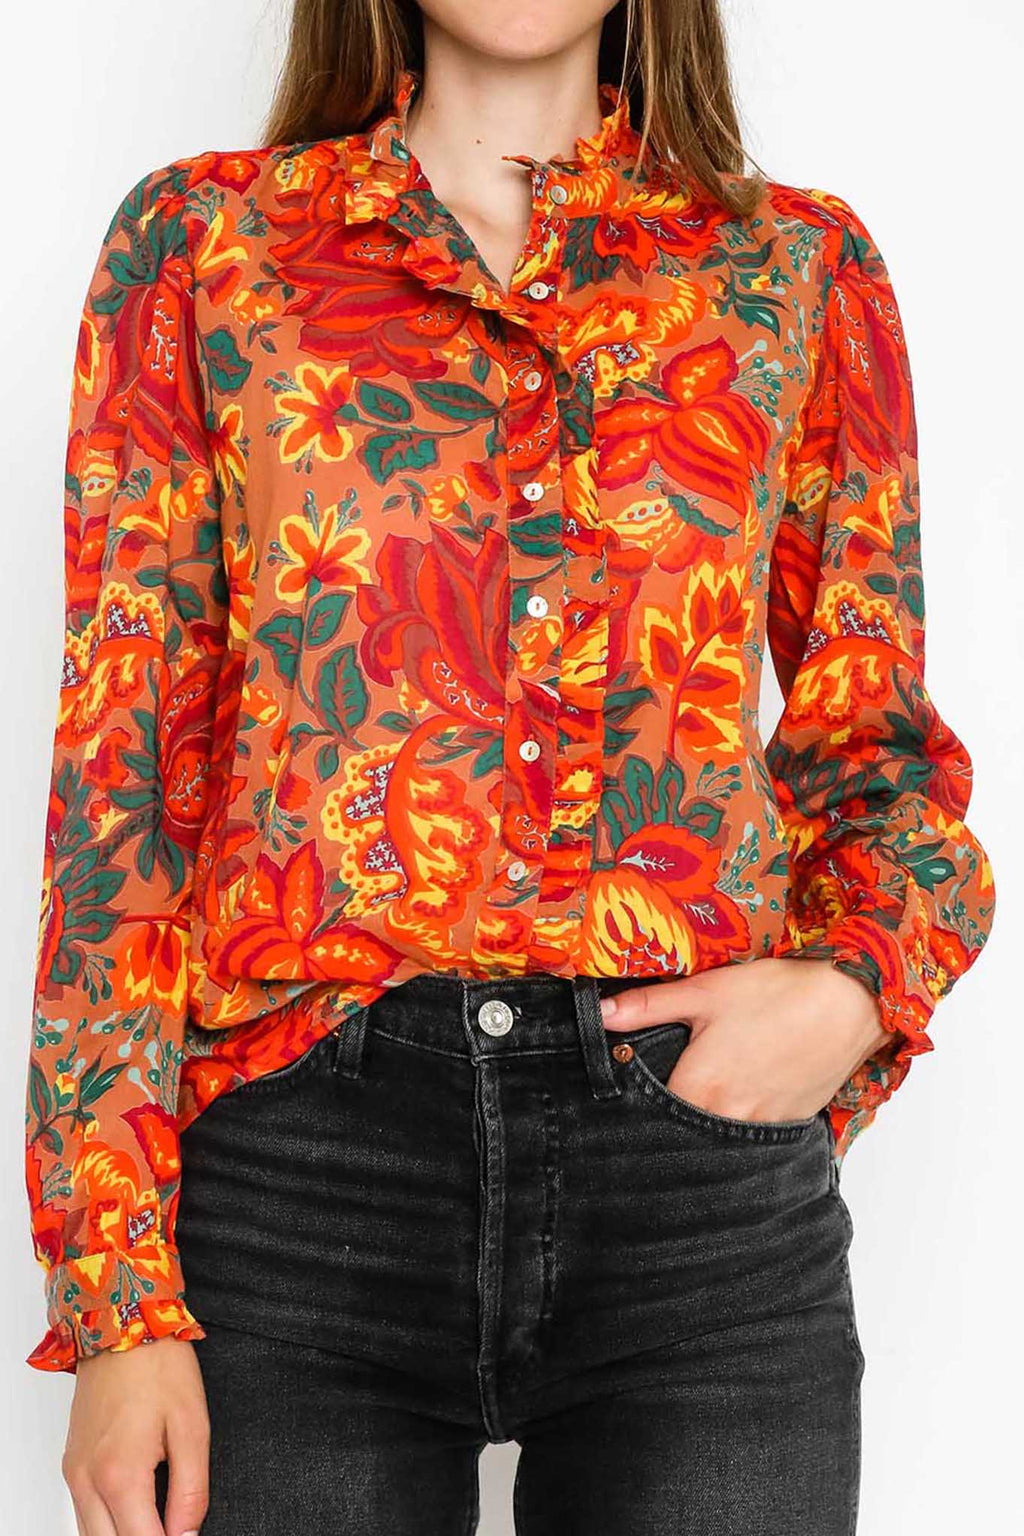 Preorder - Chrissie Shirt Meadow Sweet Caramel